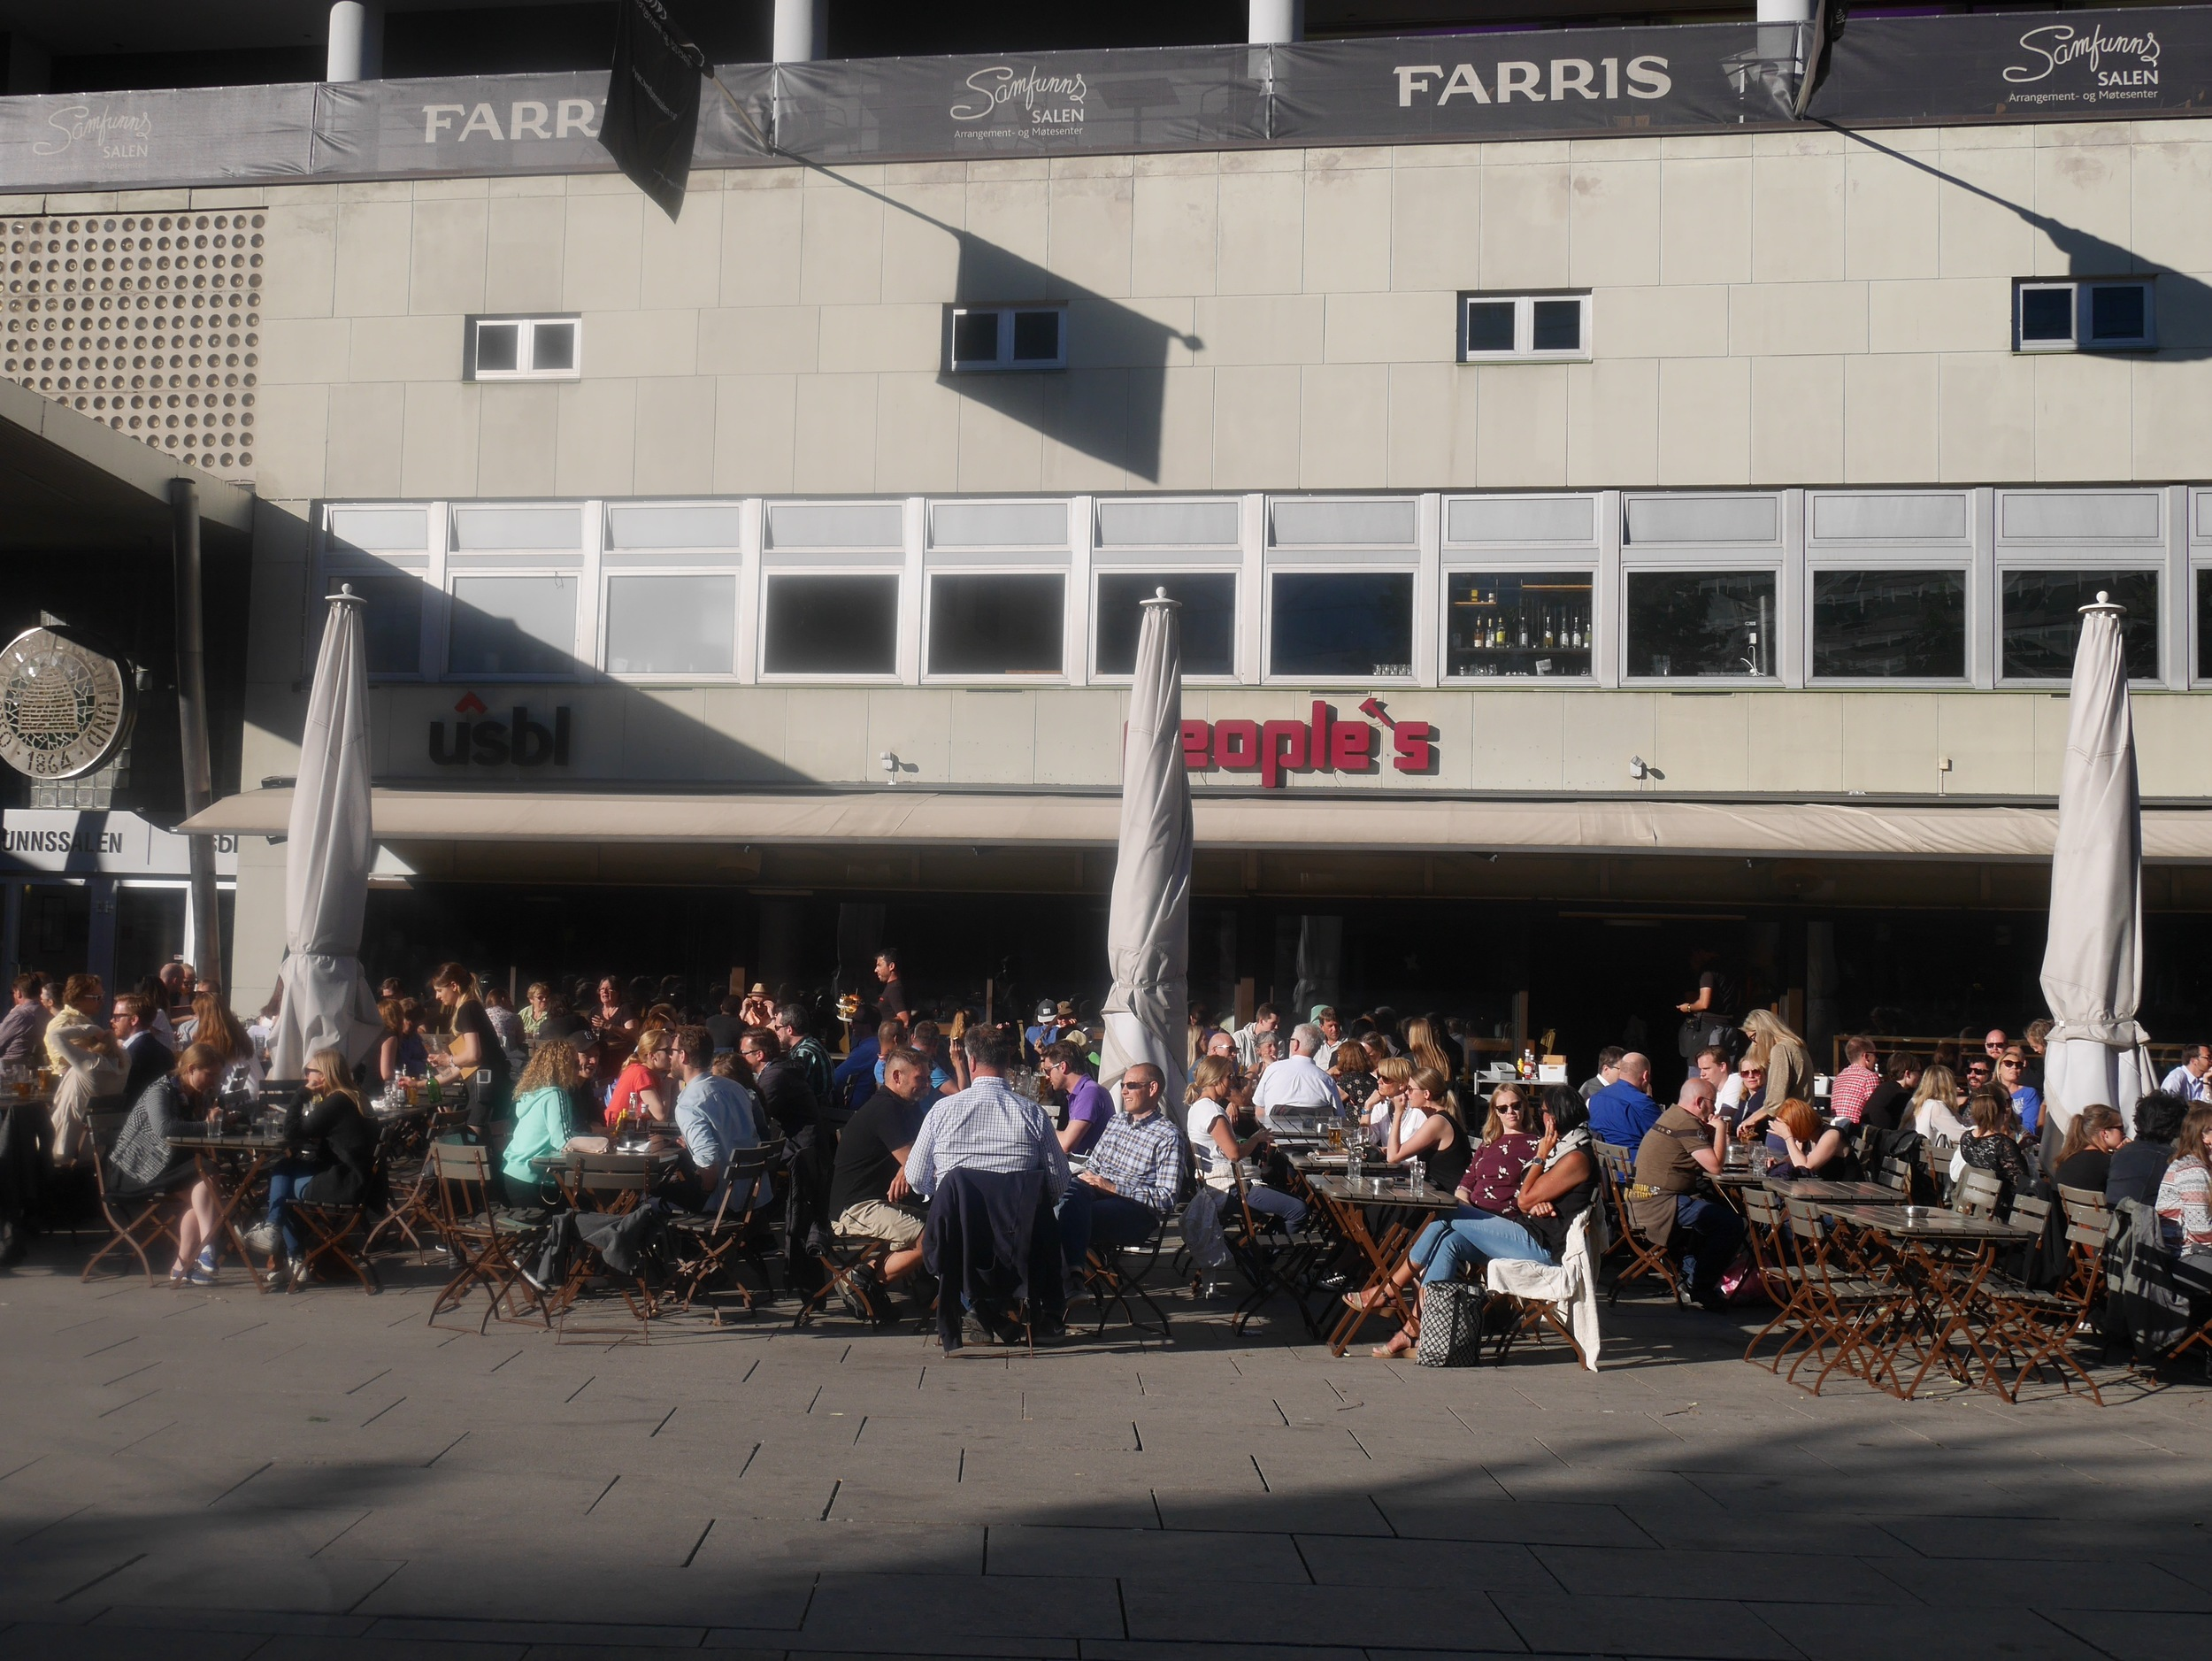 People's Bar and Cafe Oslo, Norway